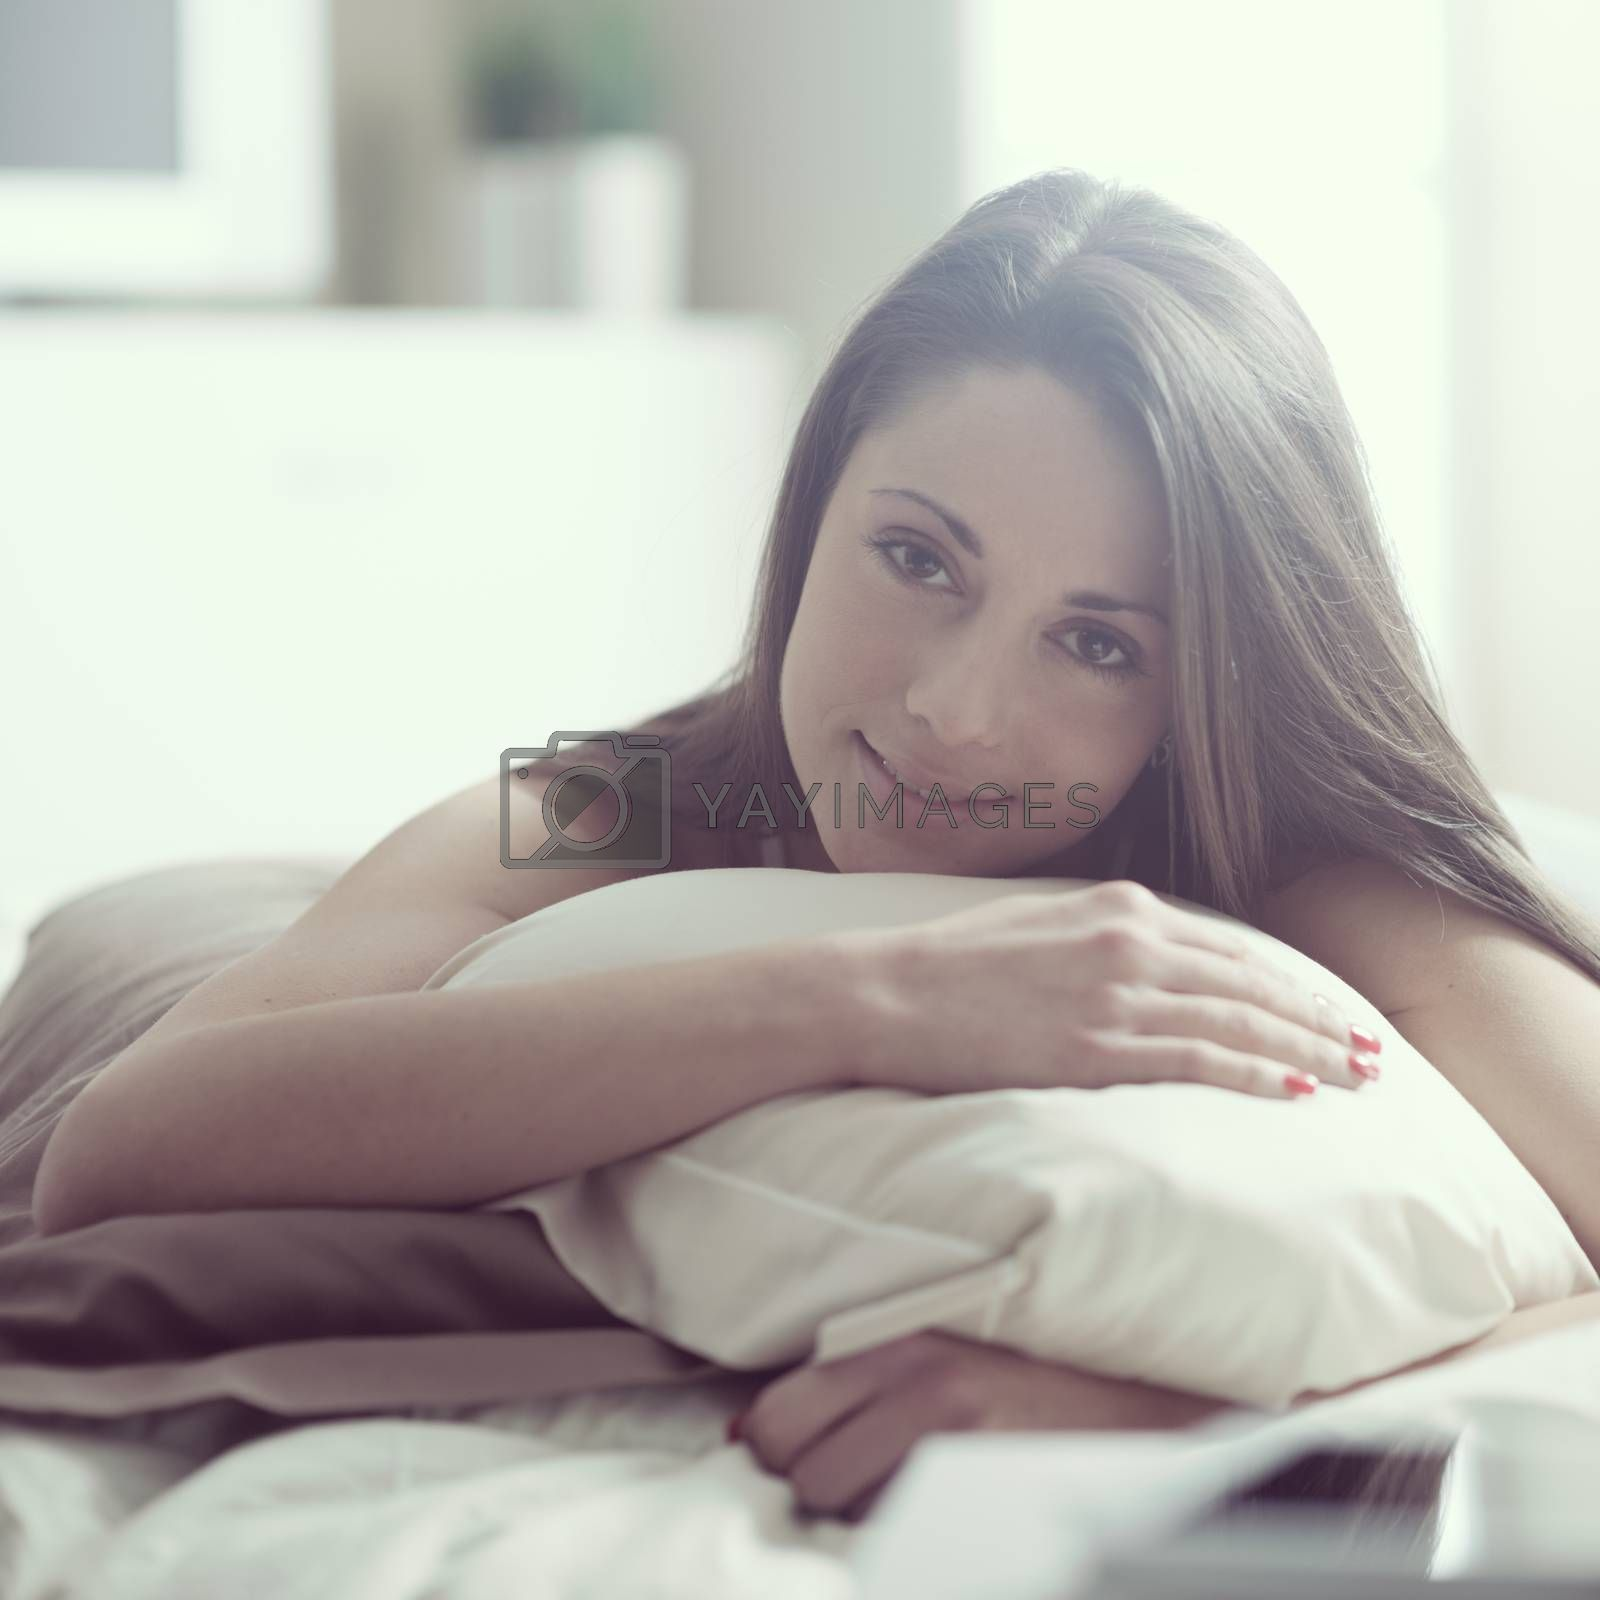 A gorgeous young woman smiling while lying in bed